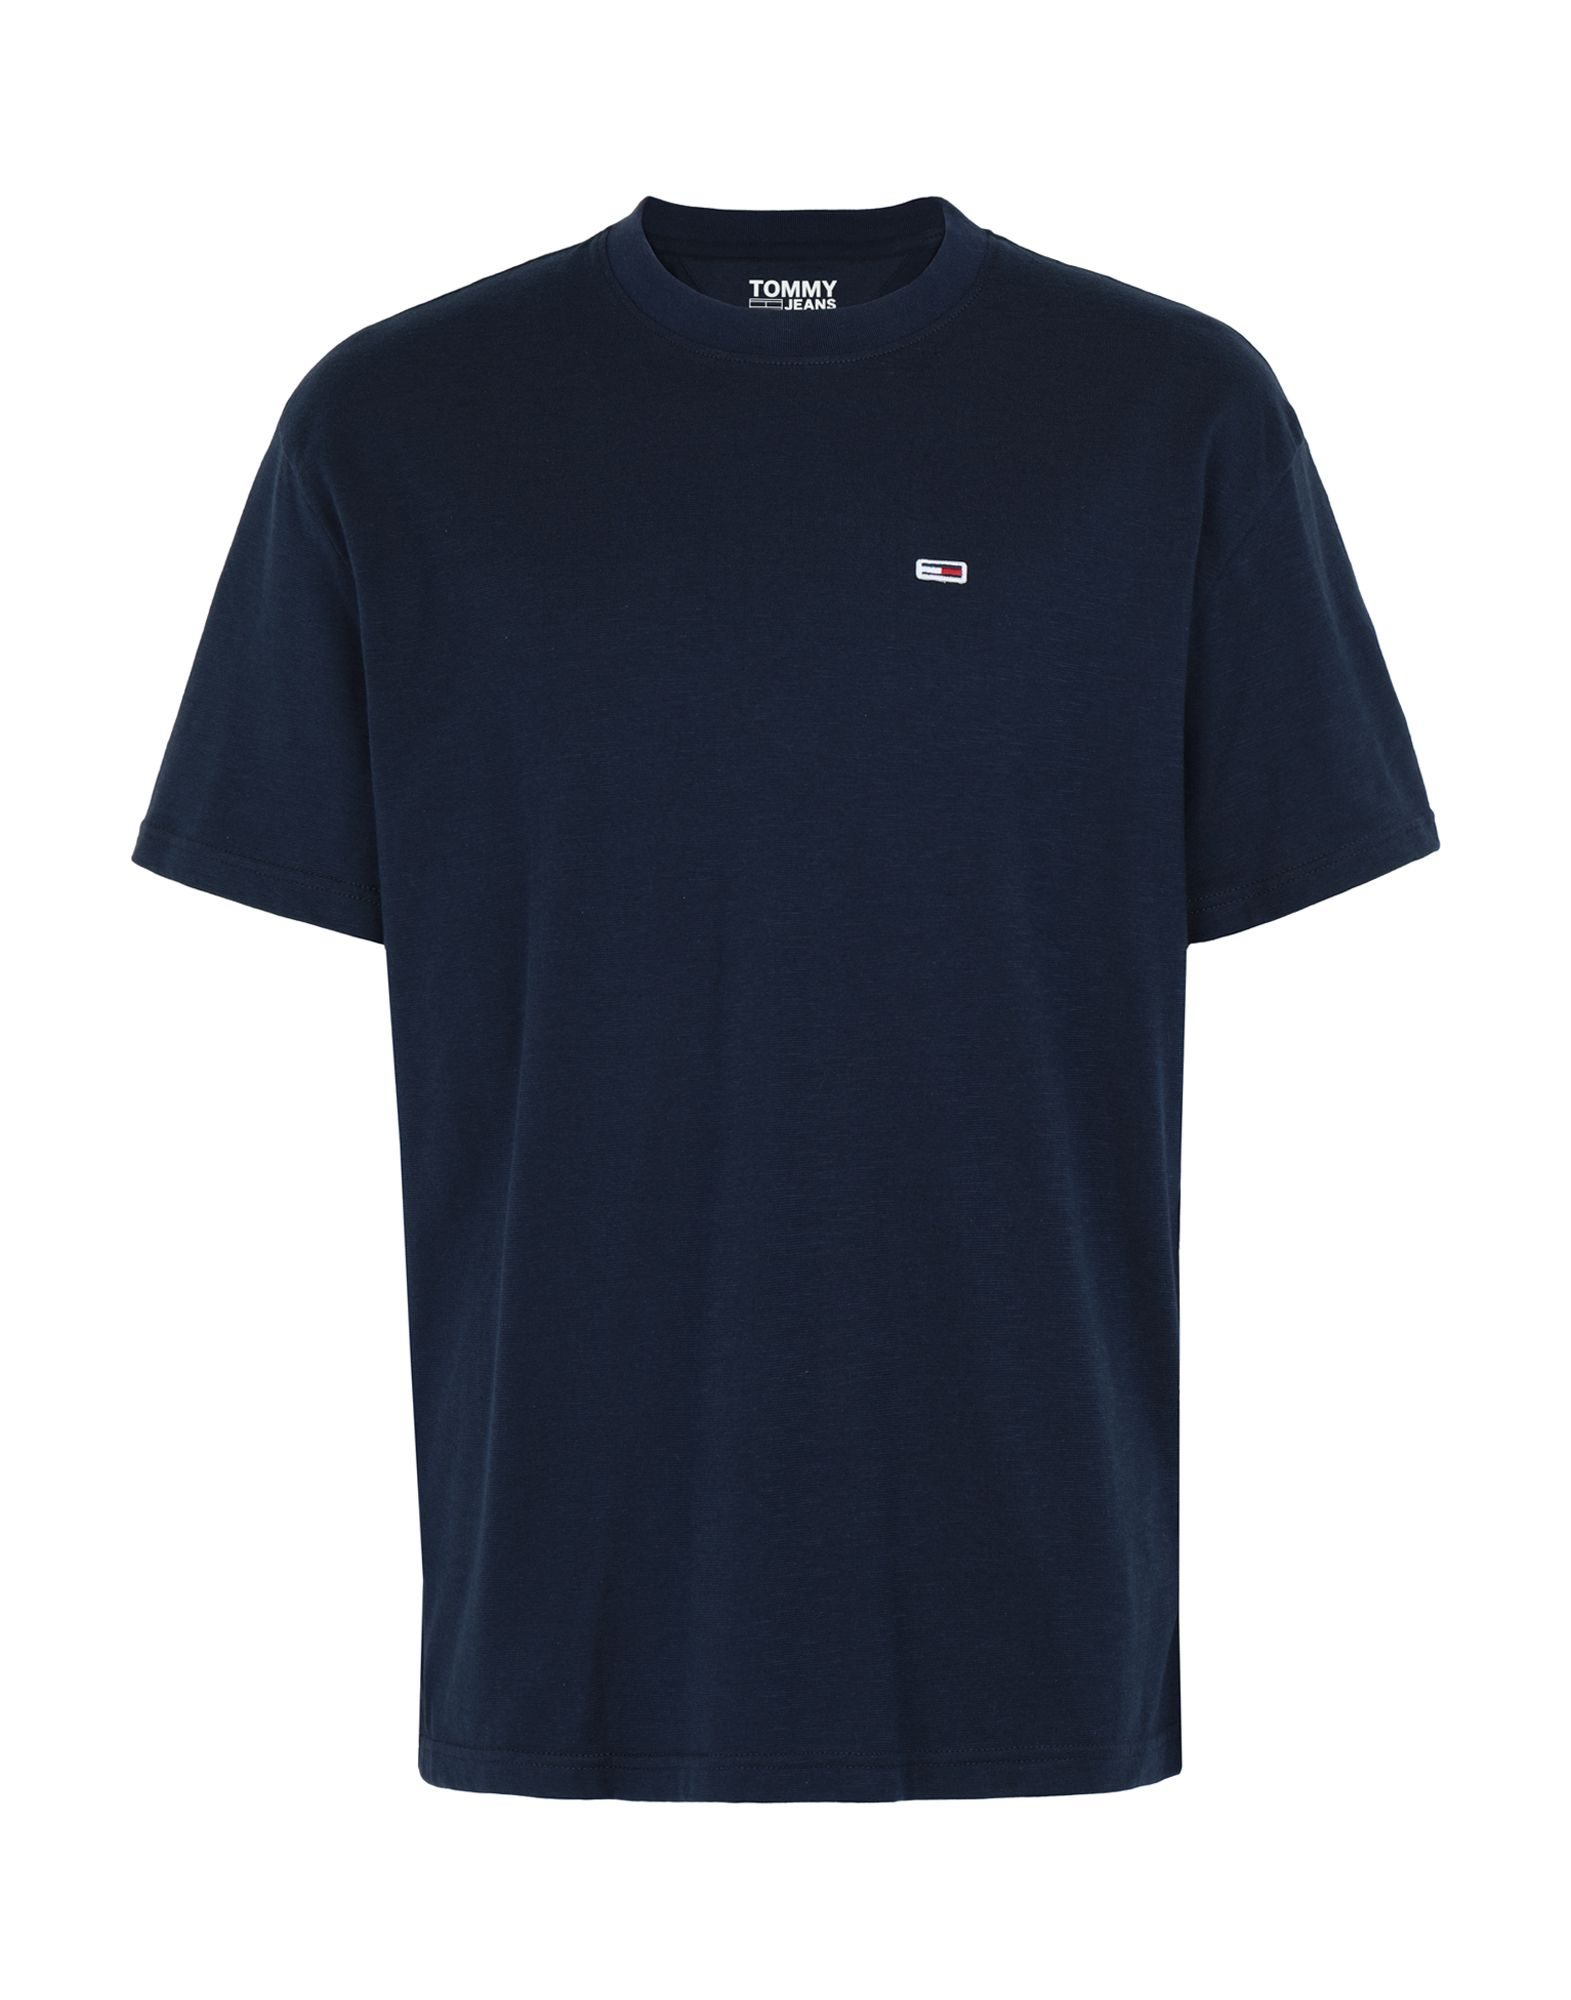 TOMMY JEANS Футболка худи tommy jeans tommy jeans to052ewbwgh8